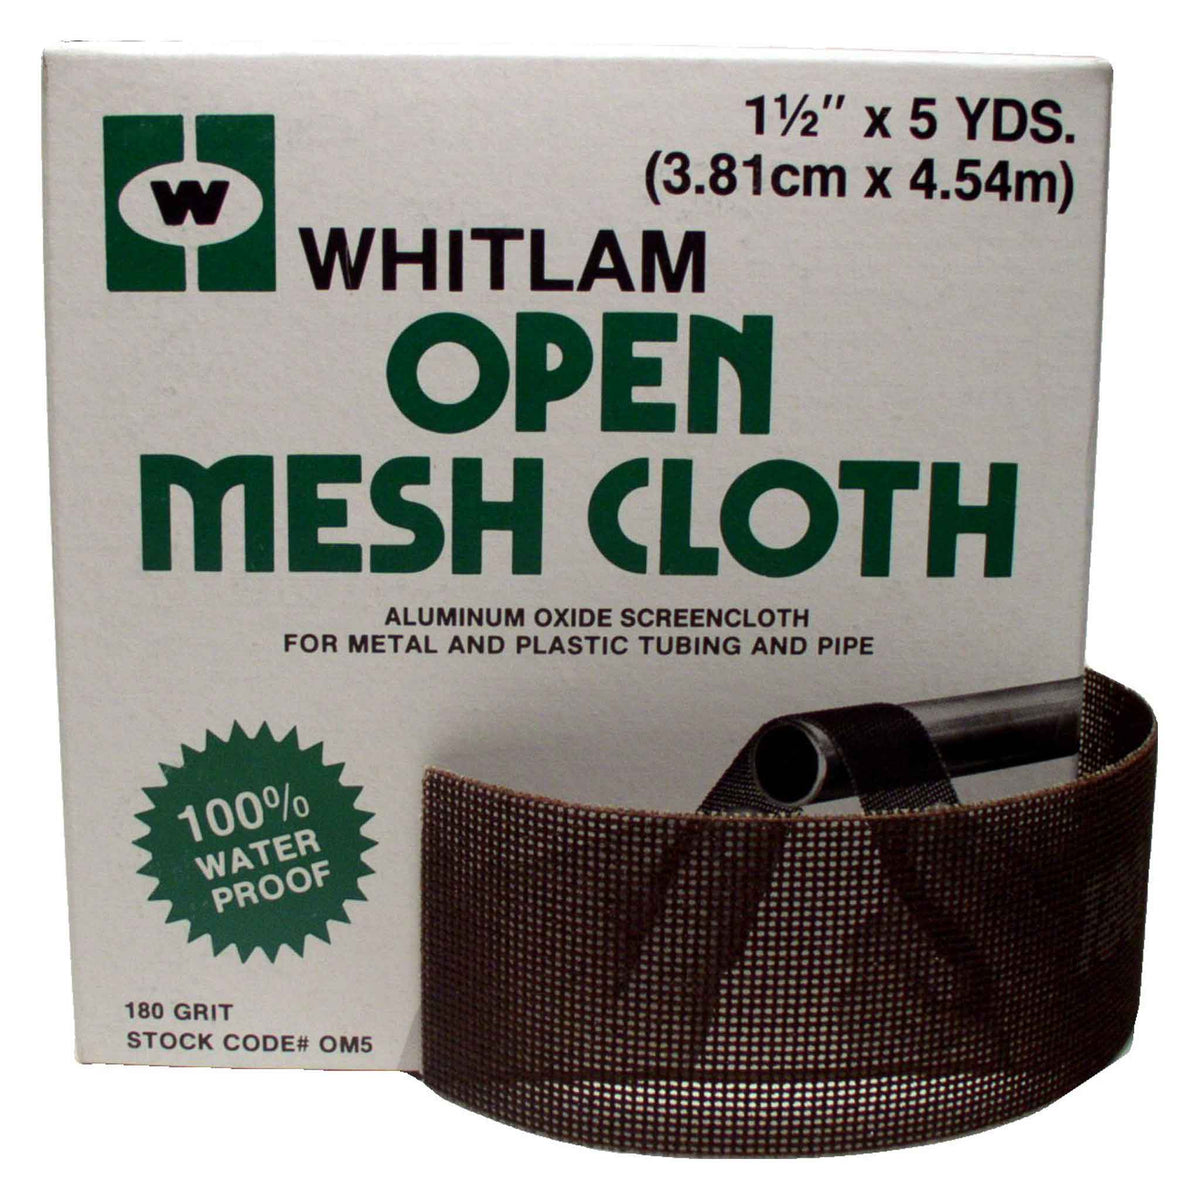 WATERPROOF OPEN MESH CLOTH